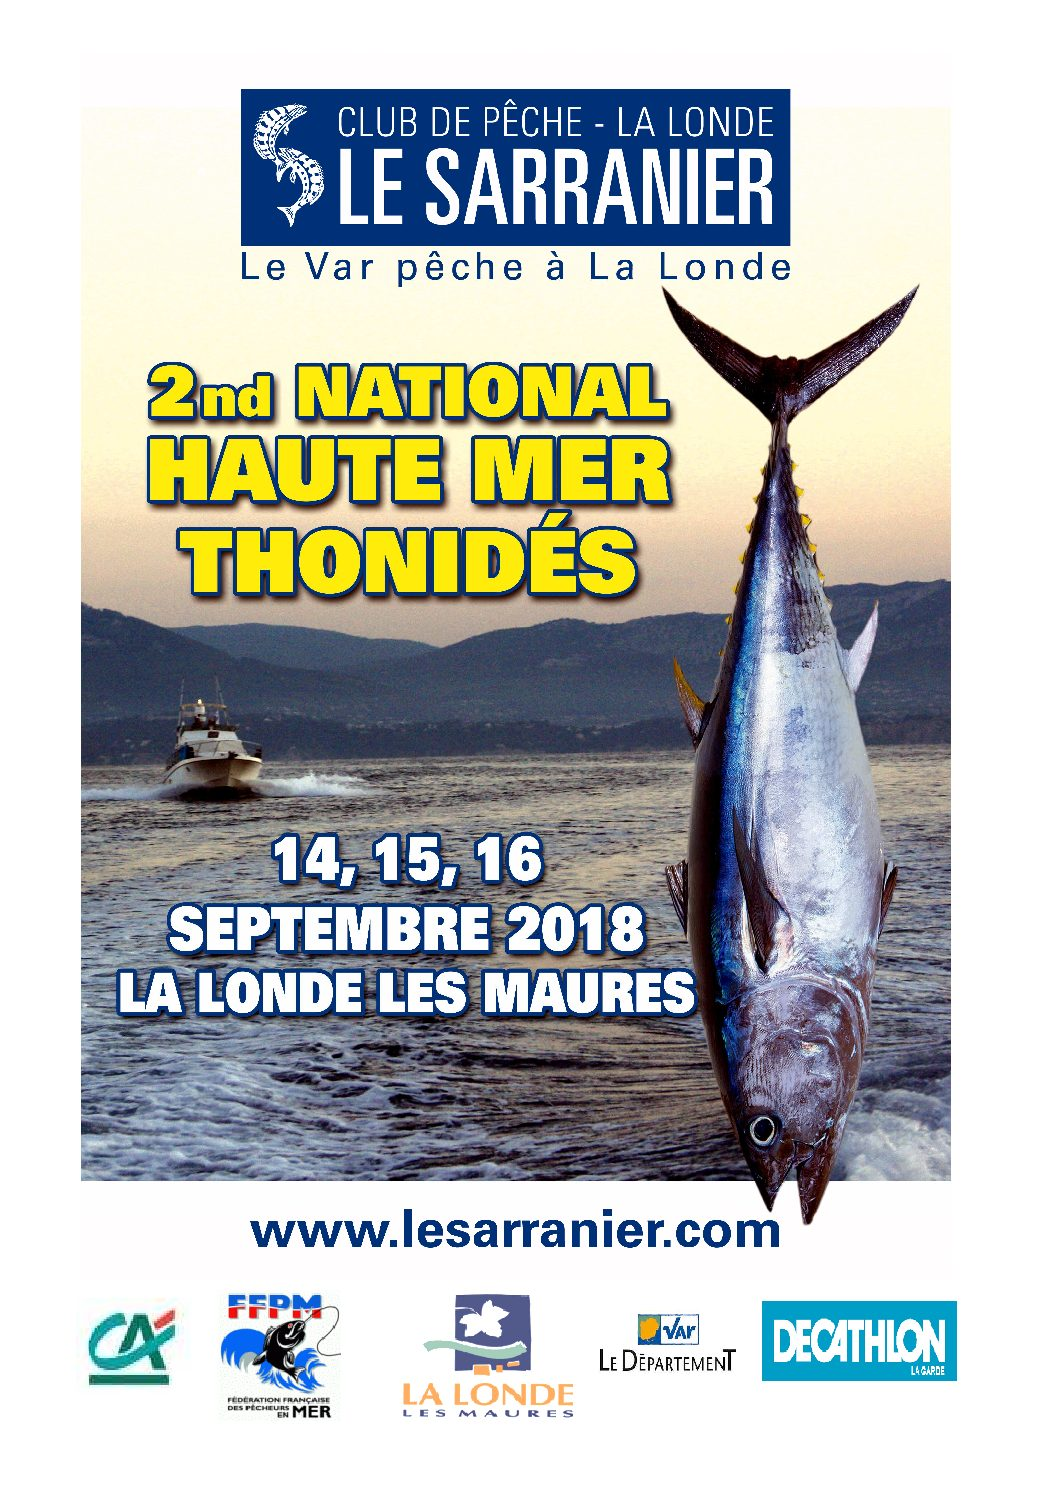 SECOND NATIONAL HAUTE MER THONIDÉS